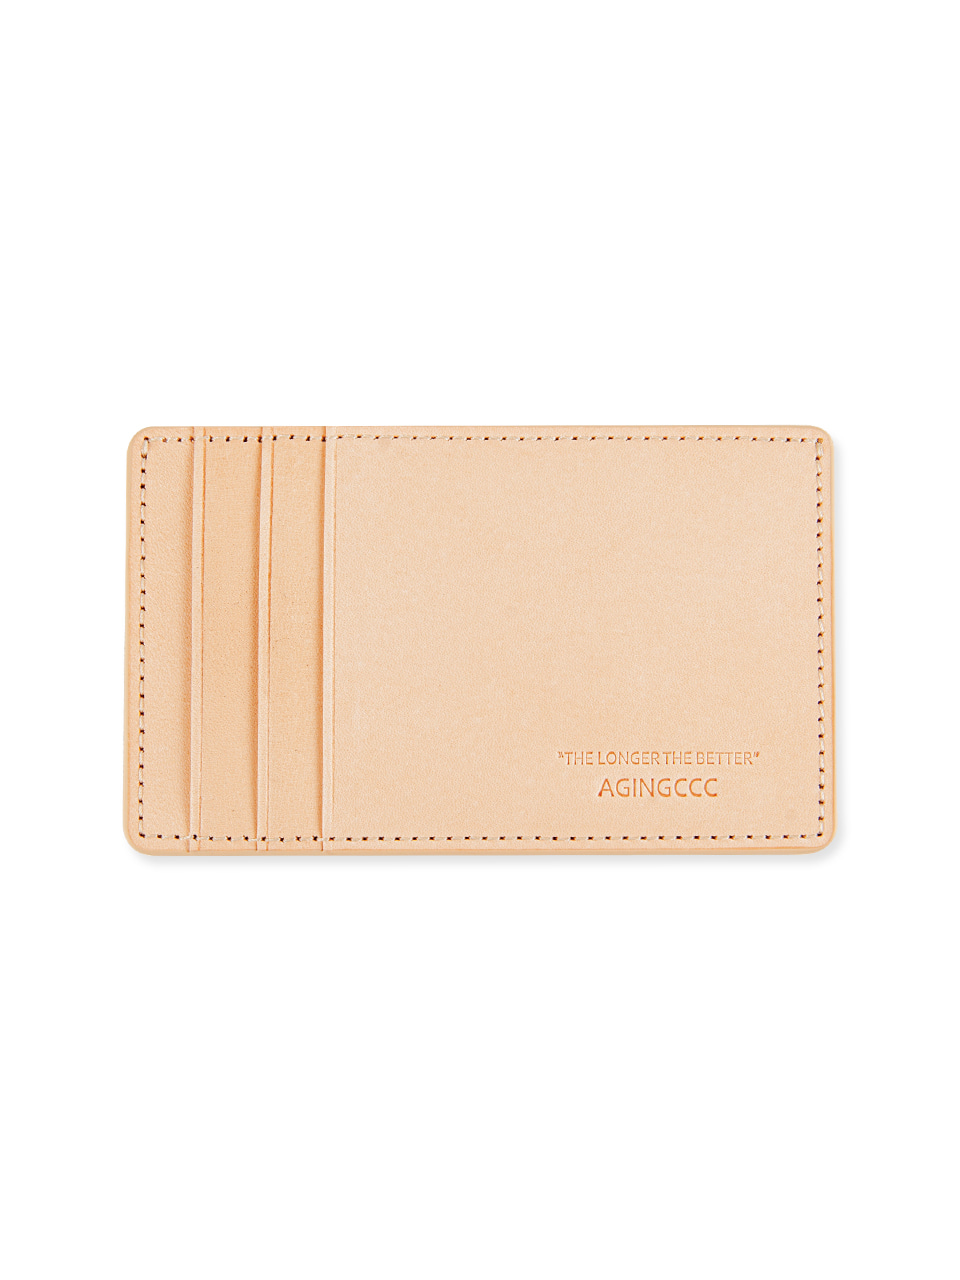 239# Y CARD WALLET-VEGETABLE